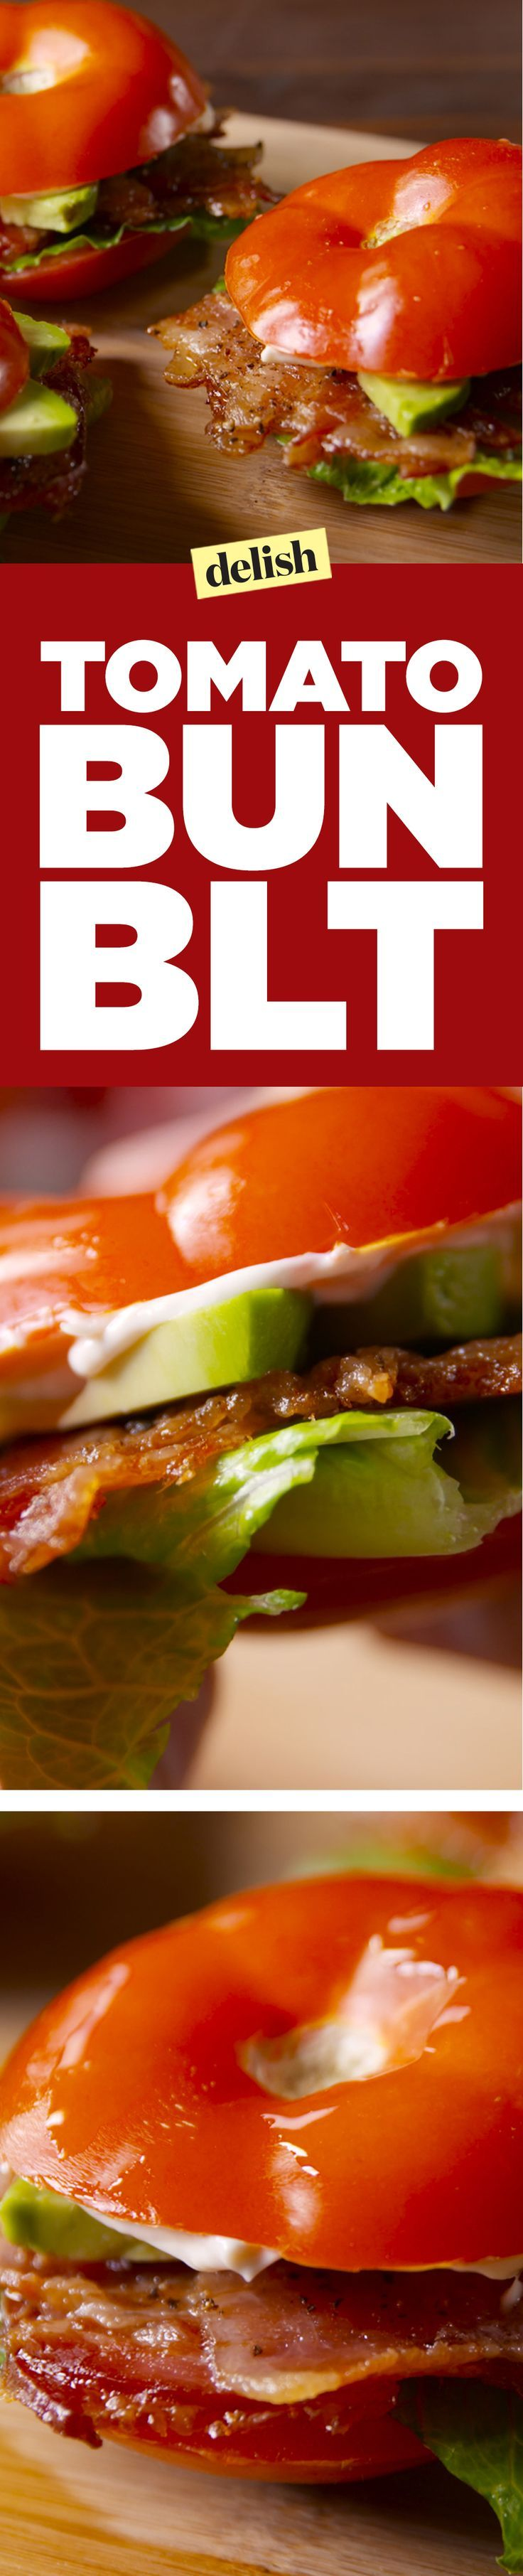 Tomato bun BLTs are so good, you won't even miss the bread. Get the recipe on http://Delish.com.